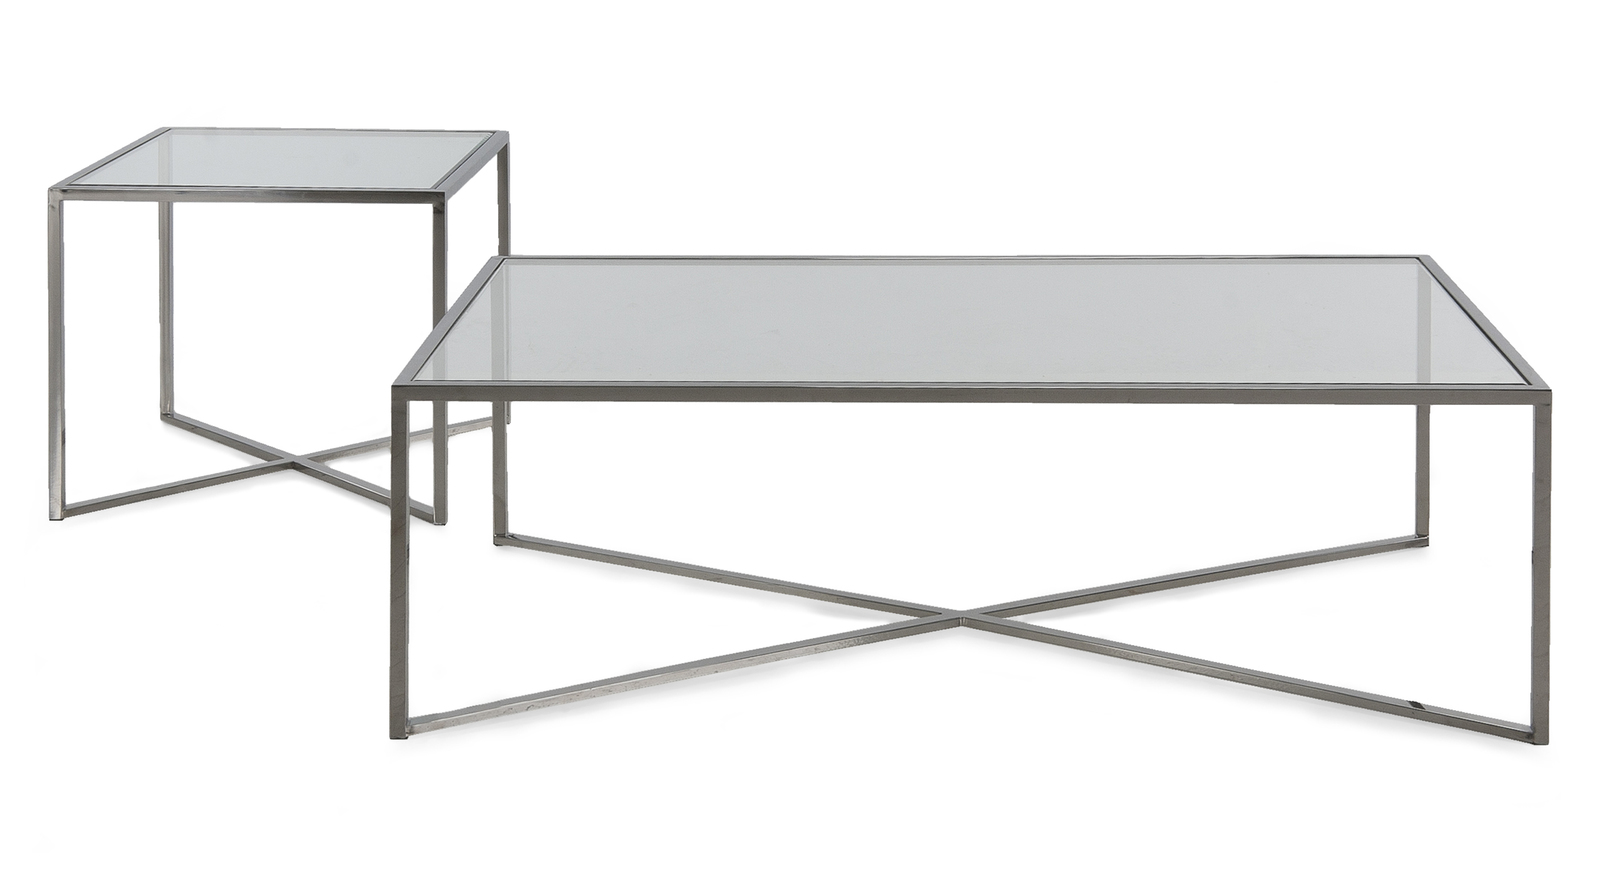 Cross Over Glass Tables